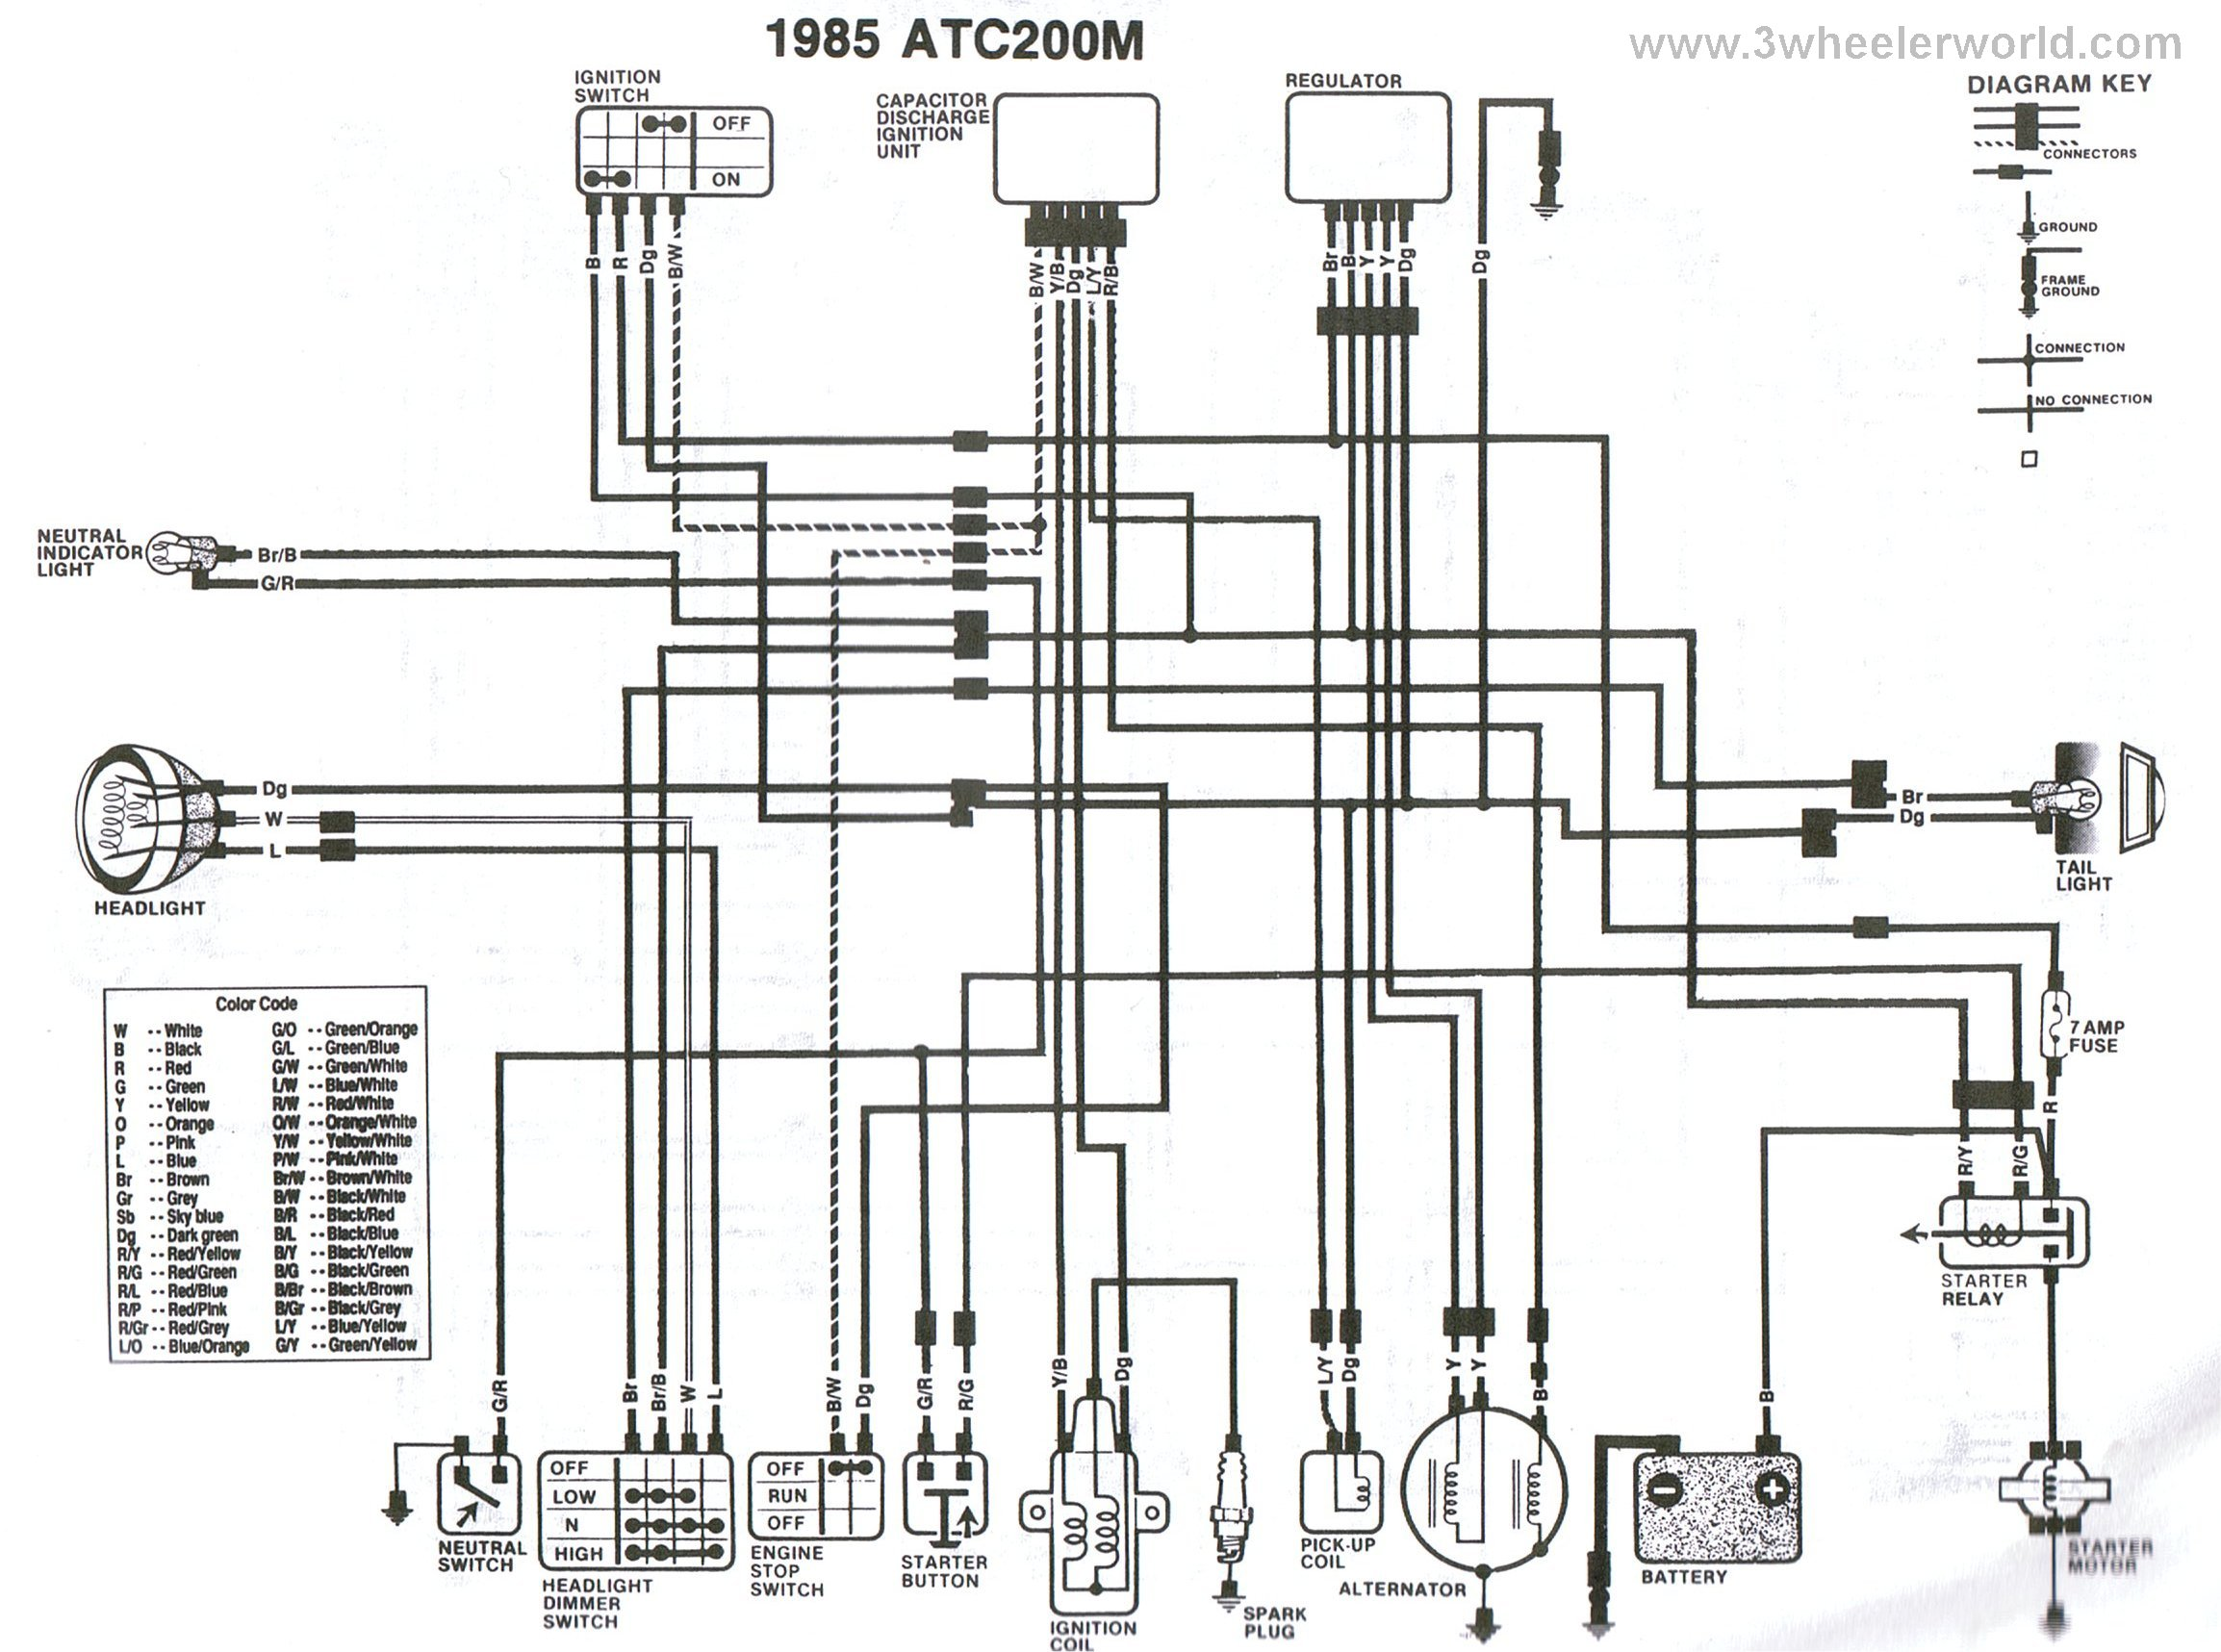 ATC200Mx85 3 wheeler world tech help honda wiring diagrams  at bakdesigns.co